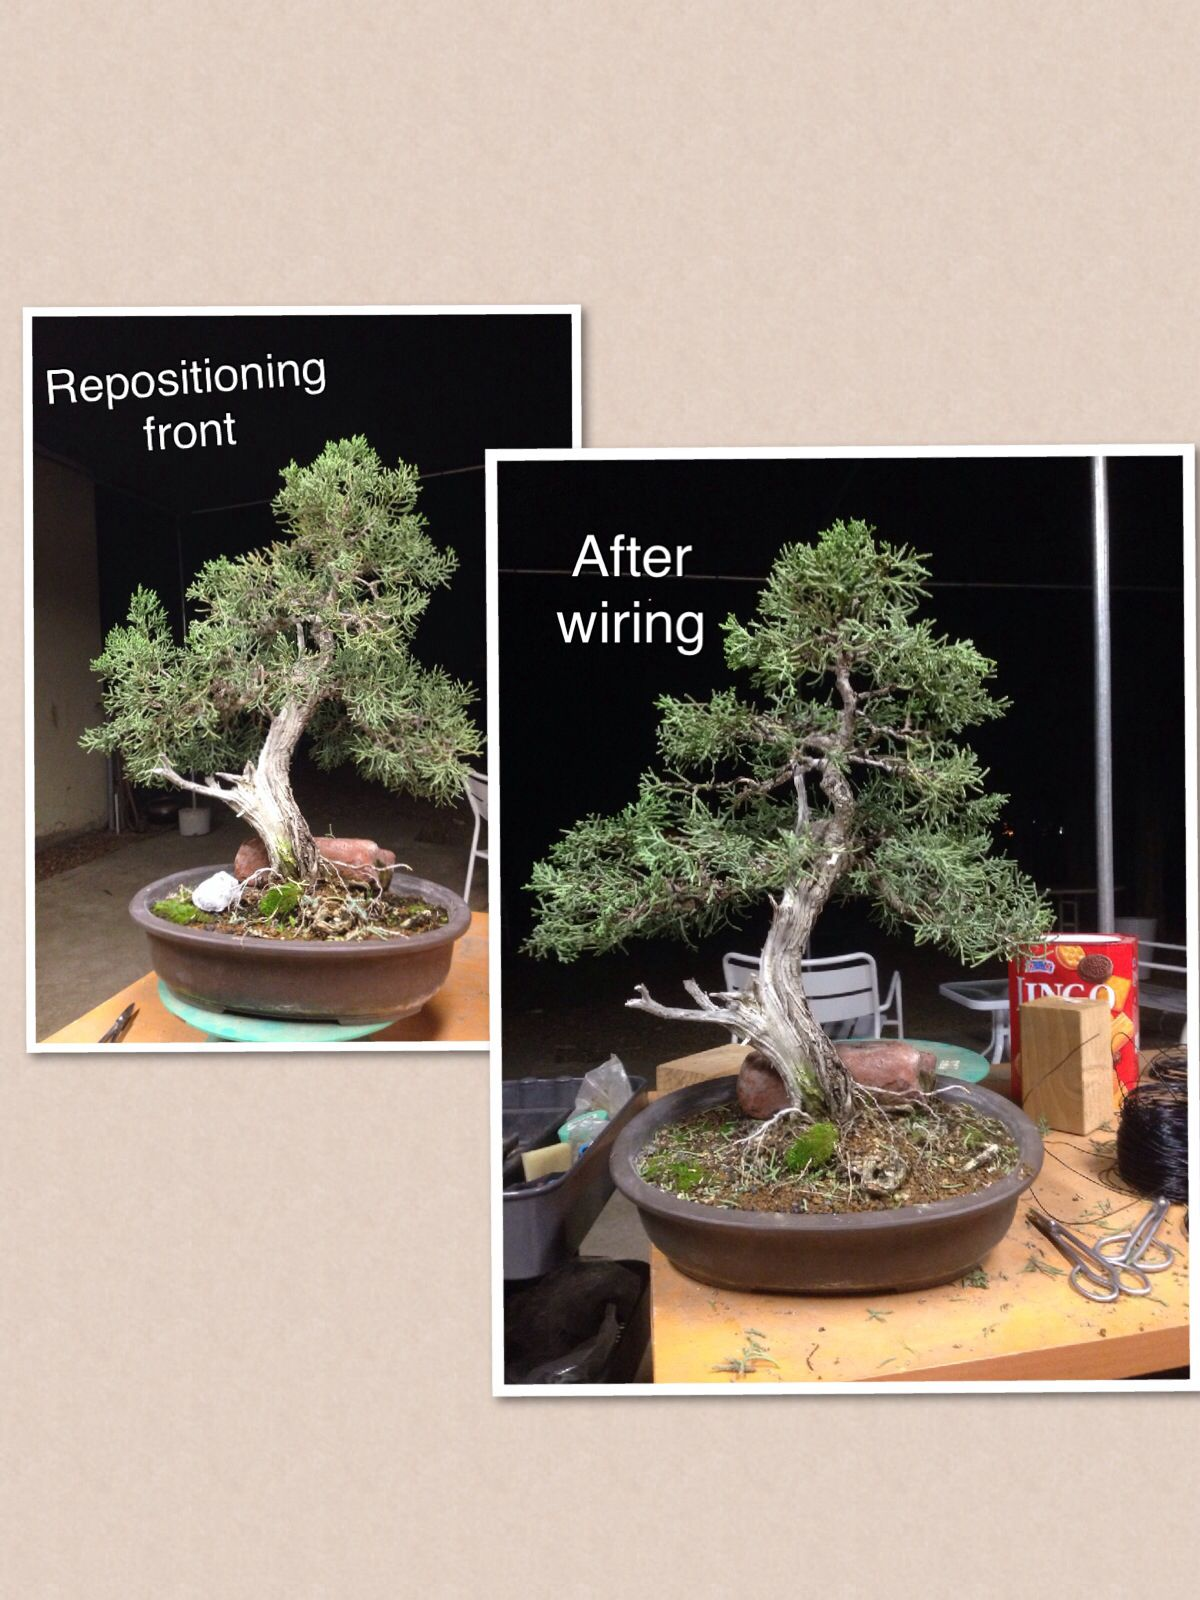 California Juniper By Jason Mark Chan Next Steps Clean Up Foliage Arrange Branches And Repot Bonsai Asian Landscape Asian Flowers Zen Garden